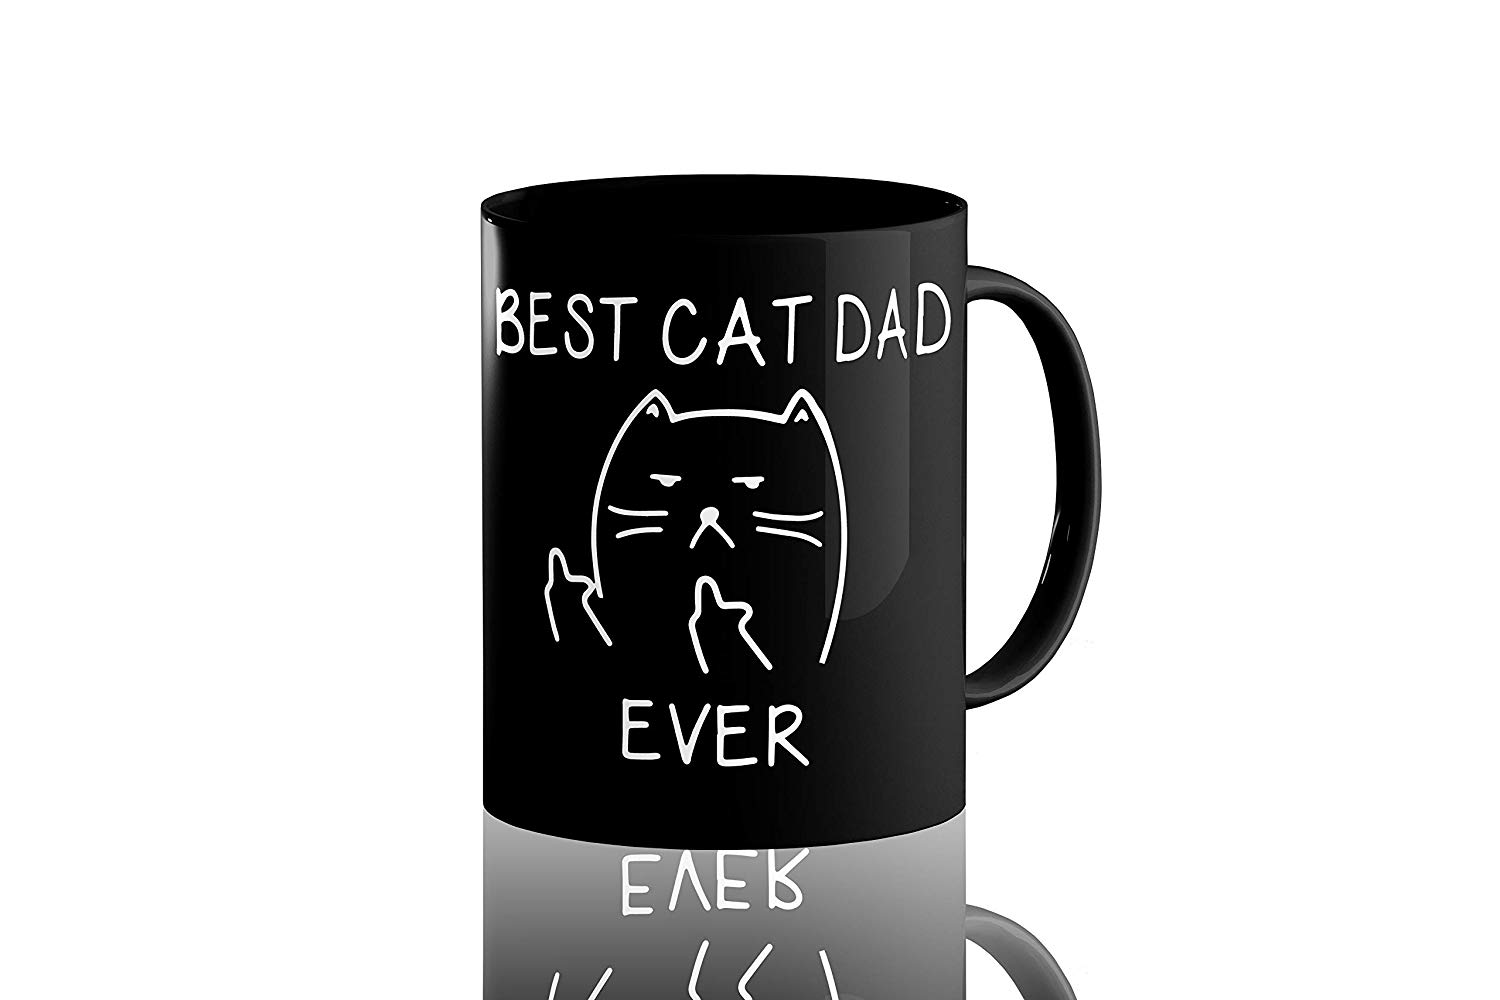 Best Cat Dad EverFunny Cat Lover Gifts Funny Middle Finger Black Coffee MugUnique Birthday Gift For Dad B079FVKRCM